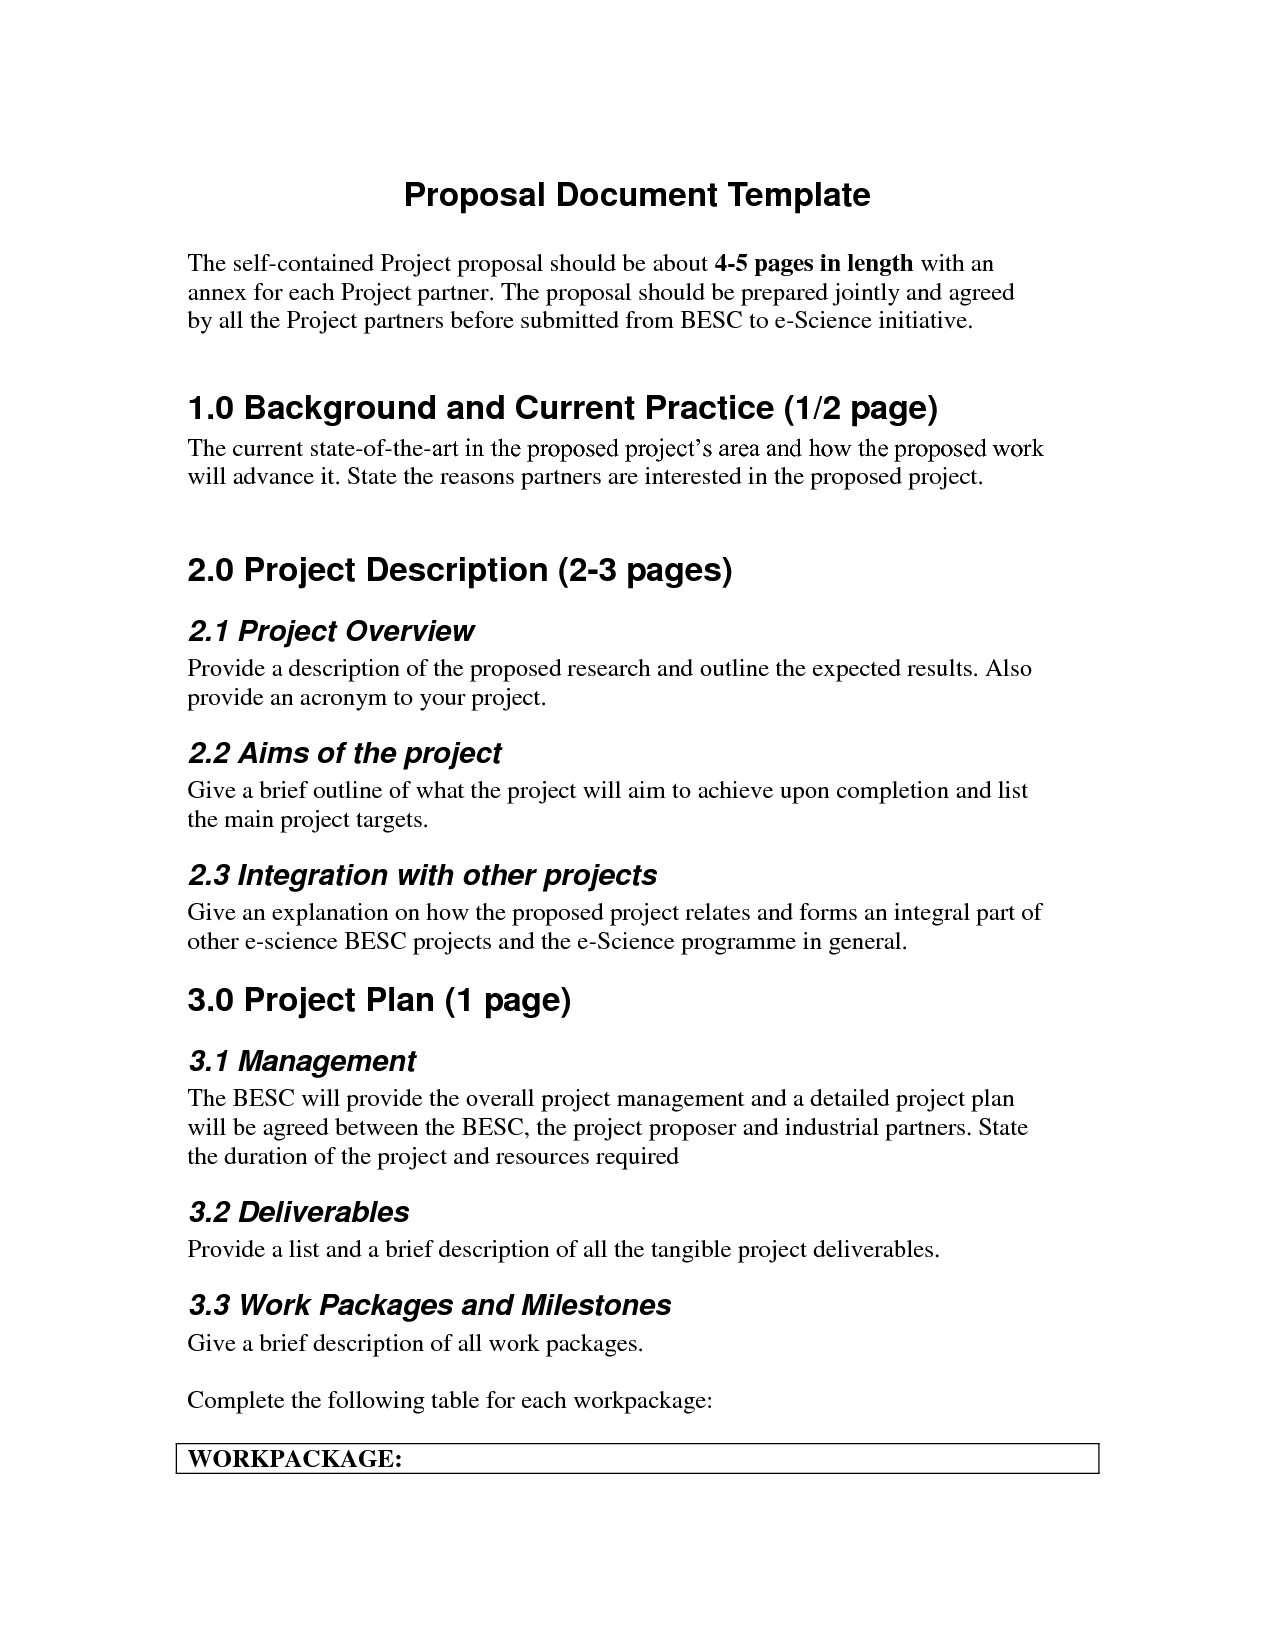 How To Write A Thesis Statement For An Essay Essay Proposal Template Proposal Essay Topics Before Students Write A  College Research Paper High School Reflective Essay also Population Essay In English Essay Proposal Template Proposal Essay Topics Before Students  Essay About Paper